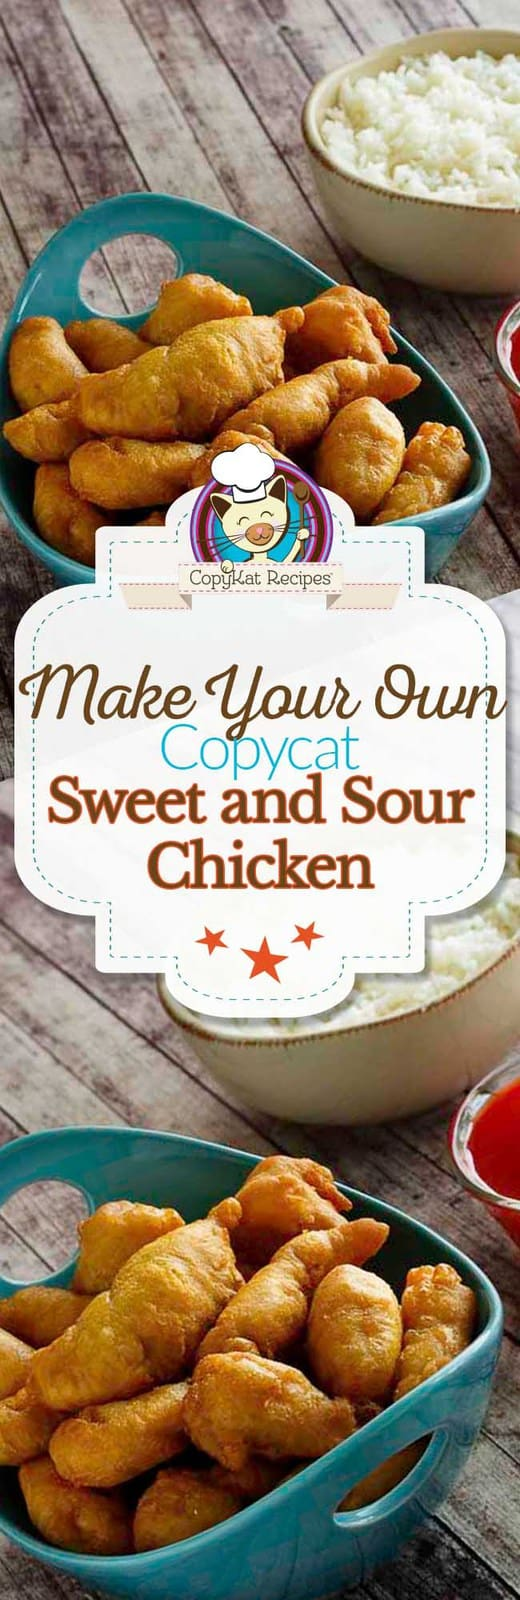 Make your own delicious Sweet and Sour chicken like it is served in a restaurant.